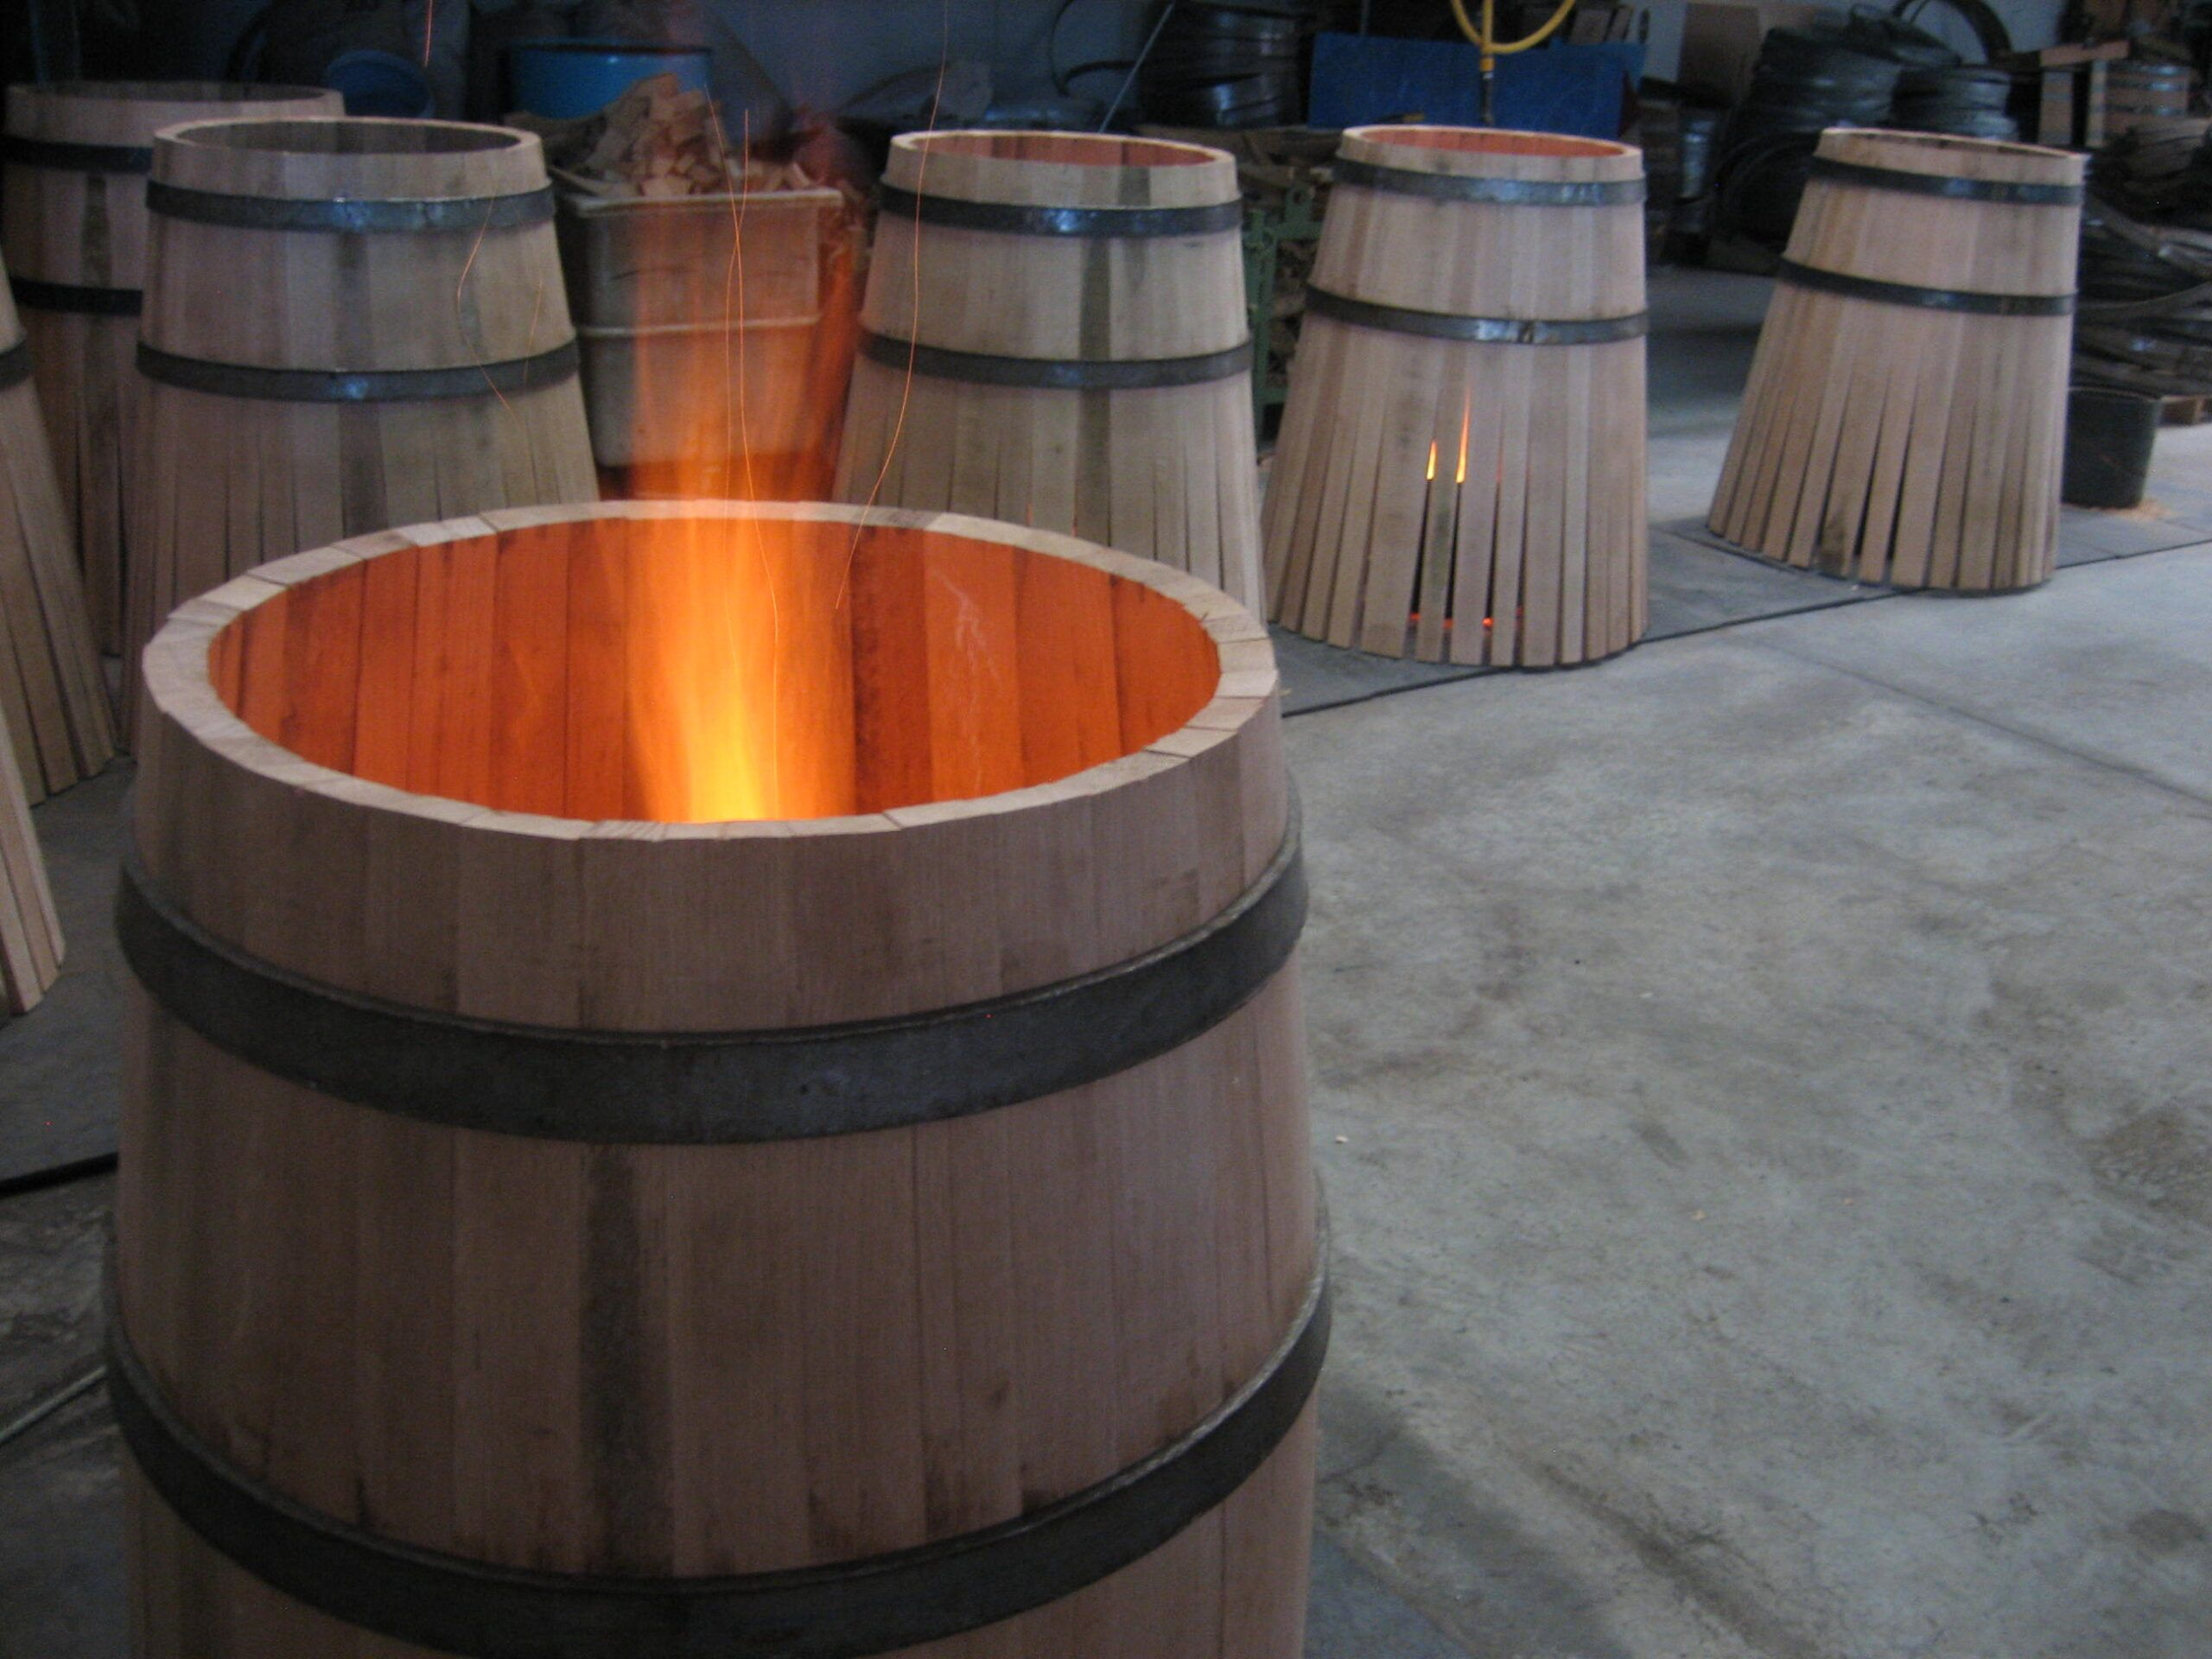 making barrels